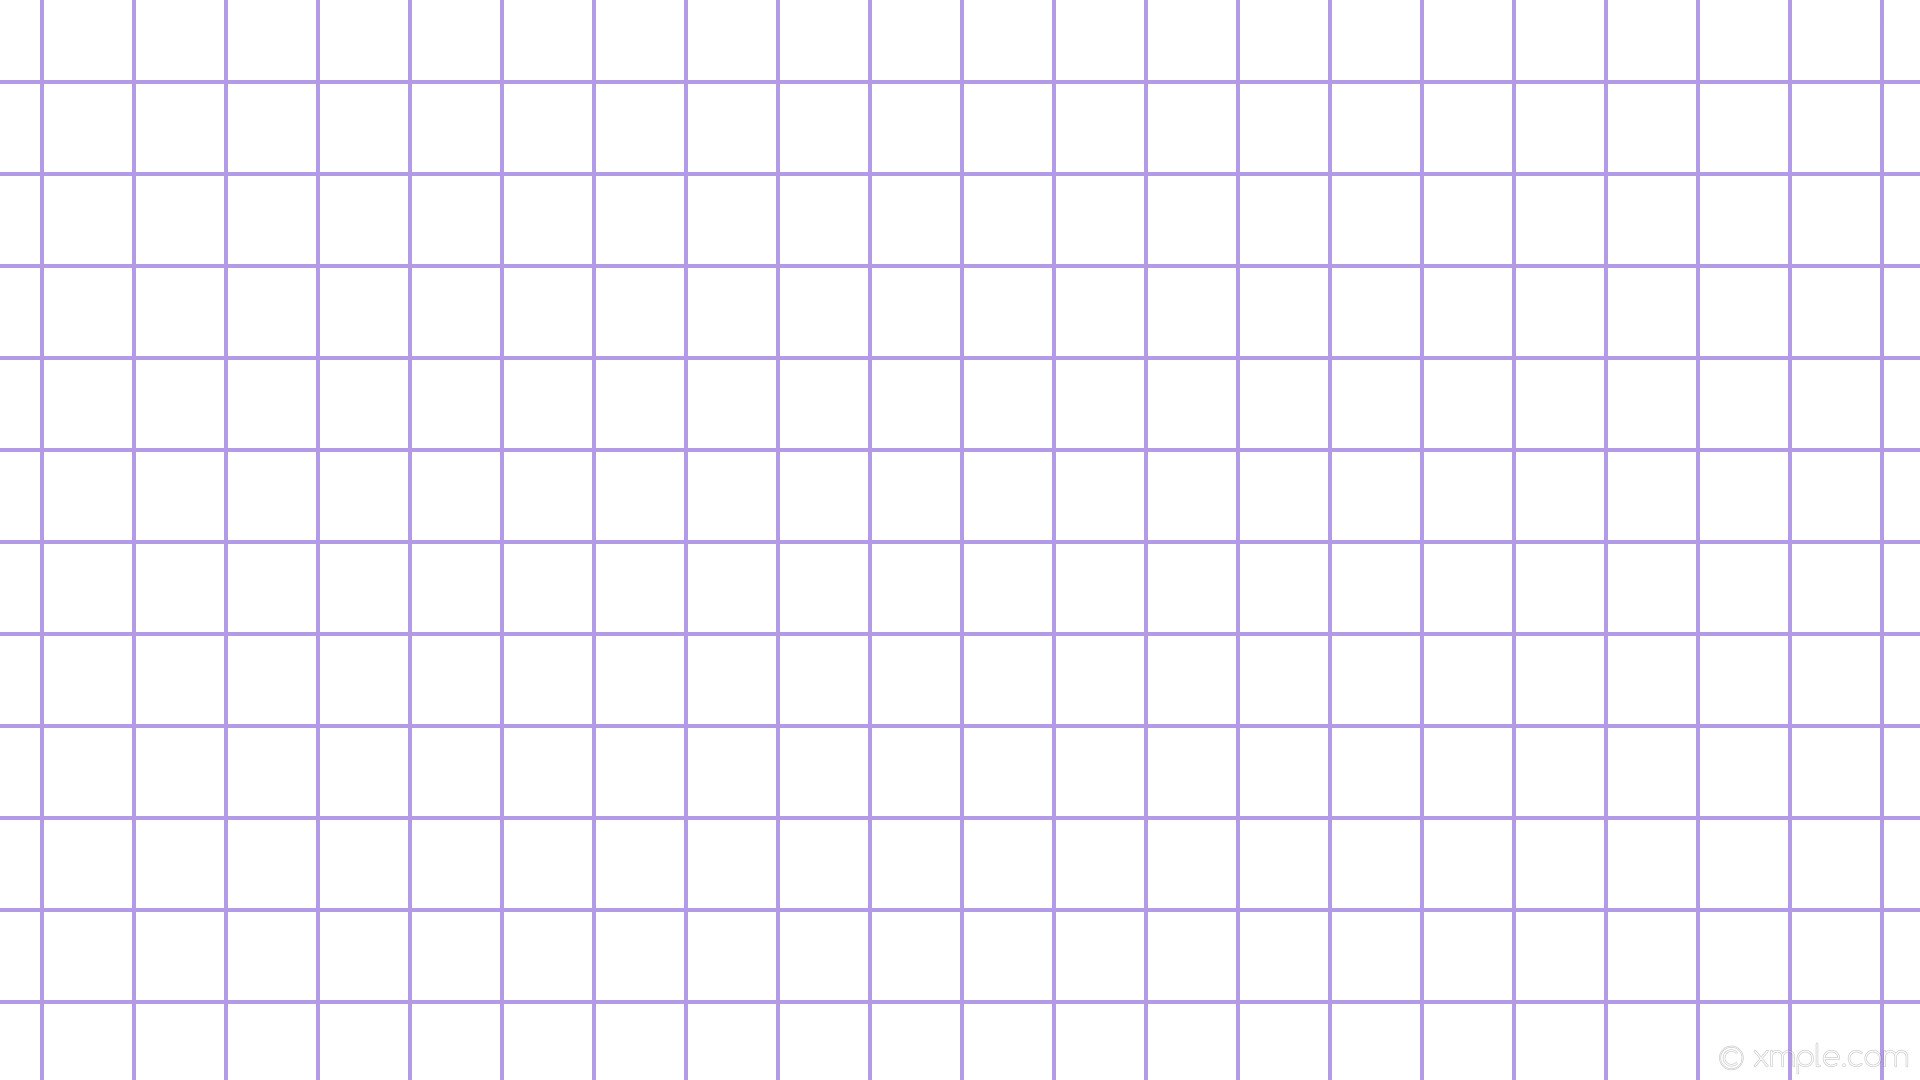 1920x1080 wallpaper graph paper purple white grid medium purple #ffffff #9370db 0°  4px 92px